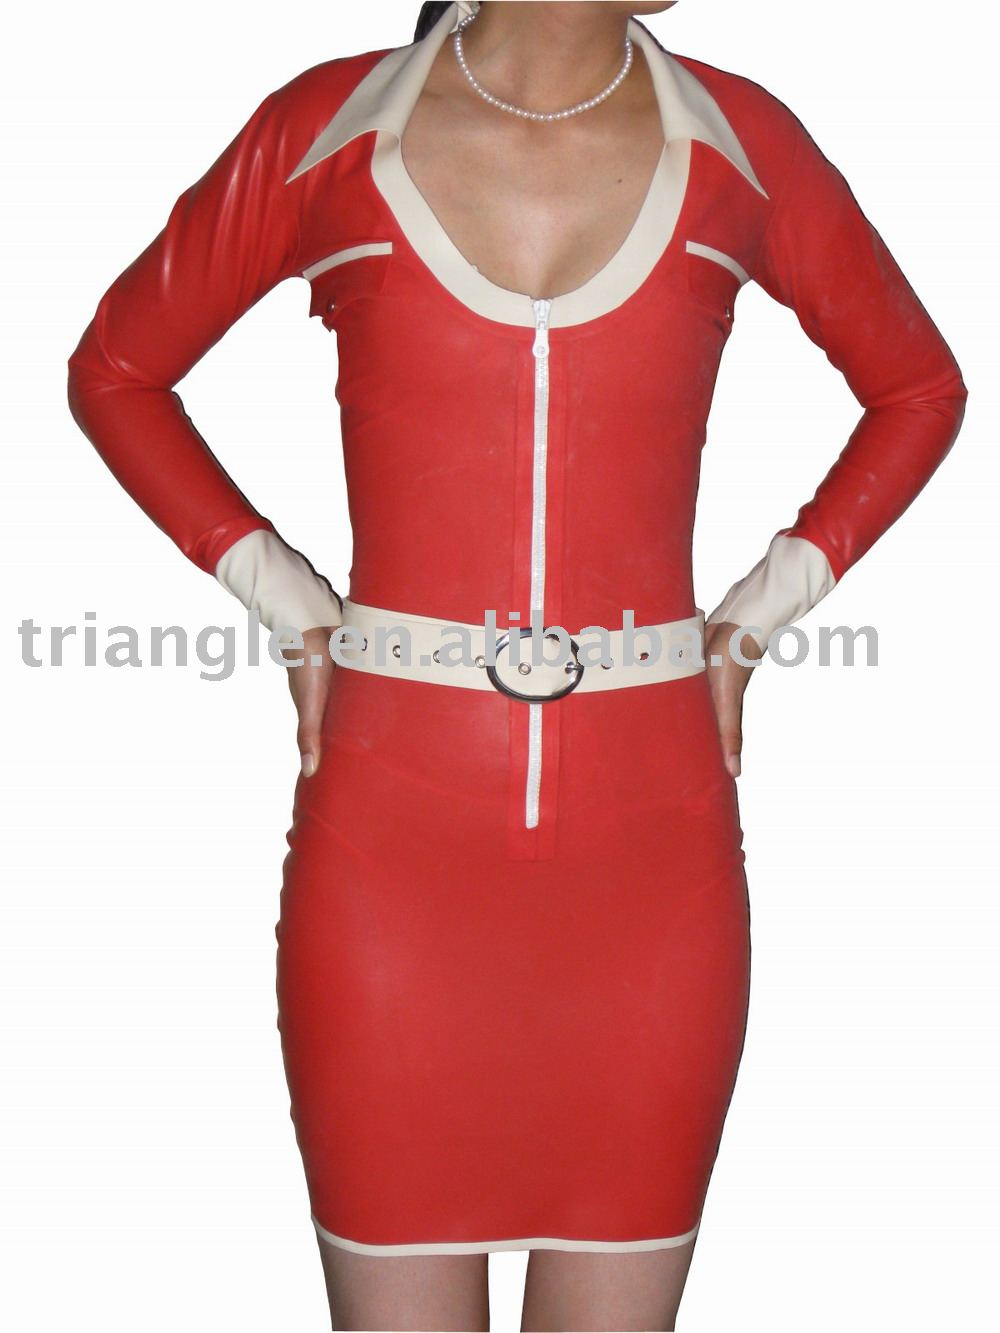 Red Latex Dress with Belt